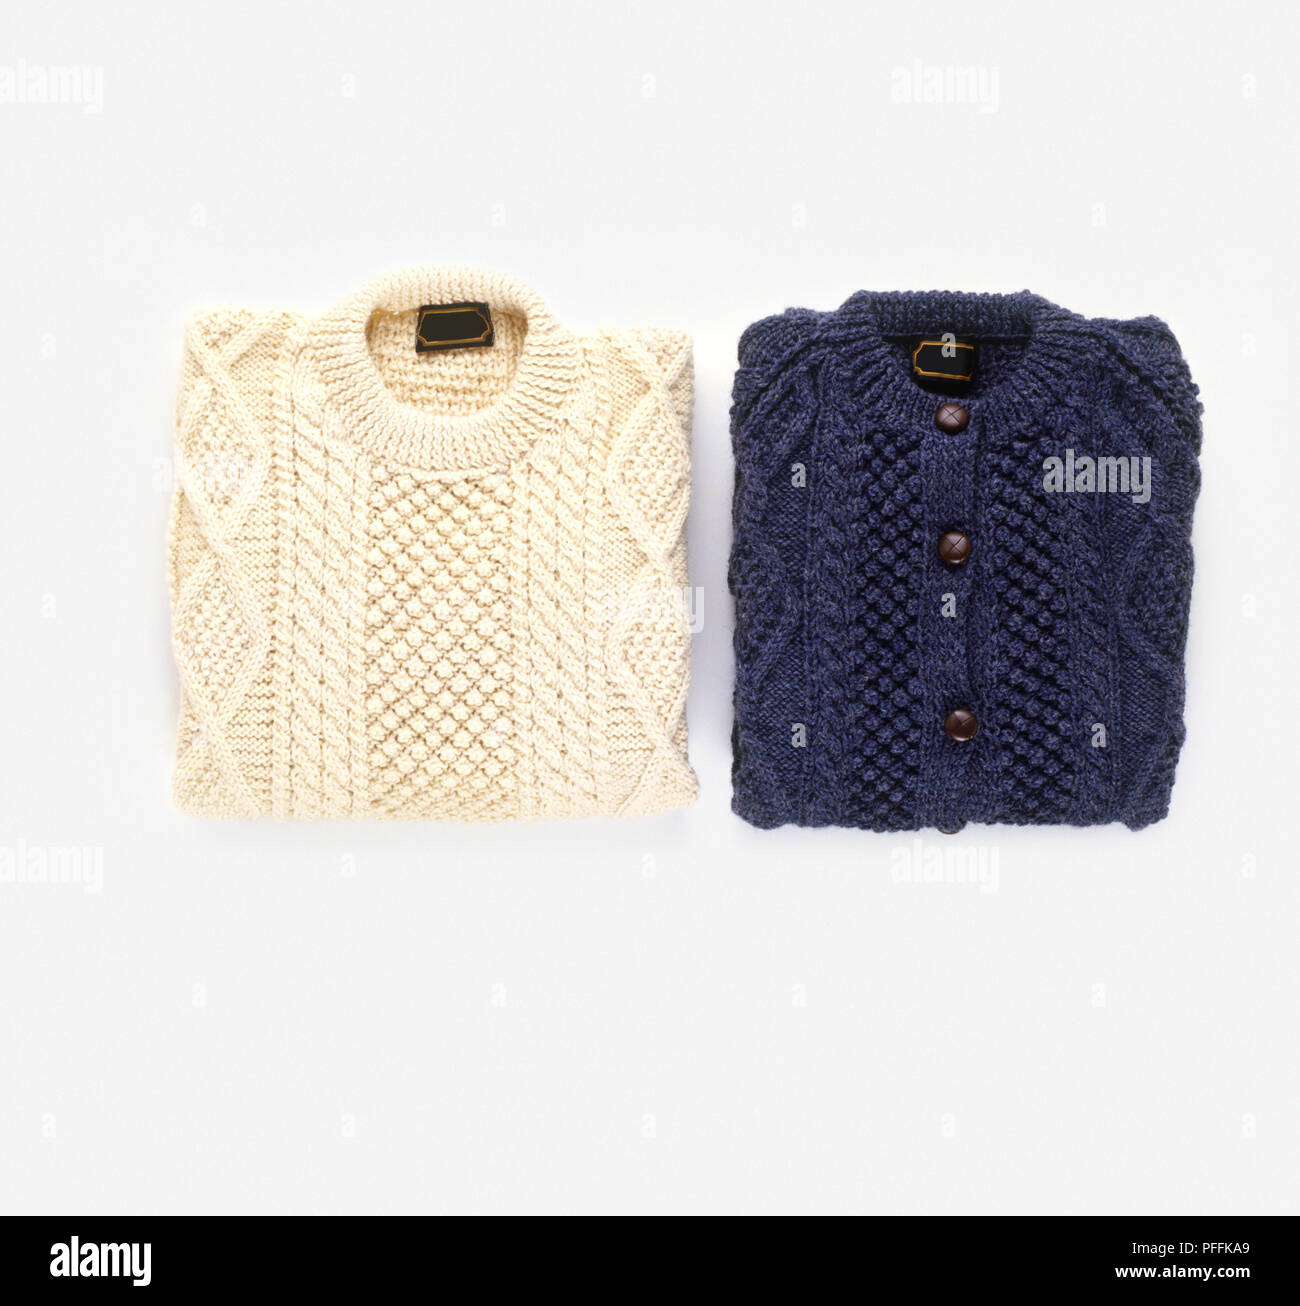 Aran Sweater Imágenes De Stock & Aran Sweater Fotos De Stock - Alamy